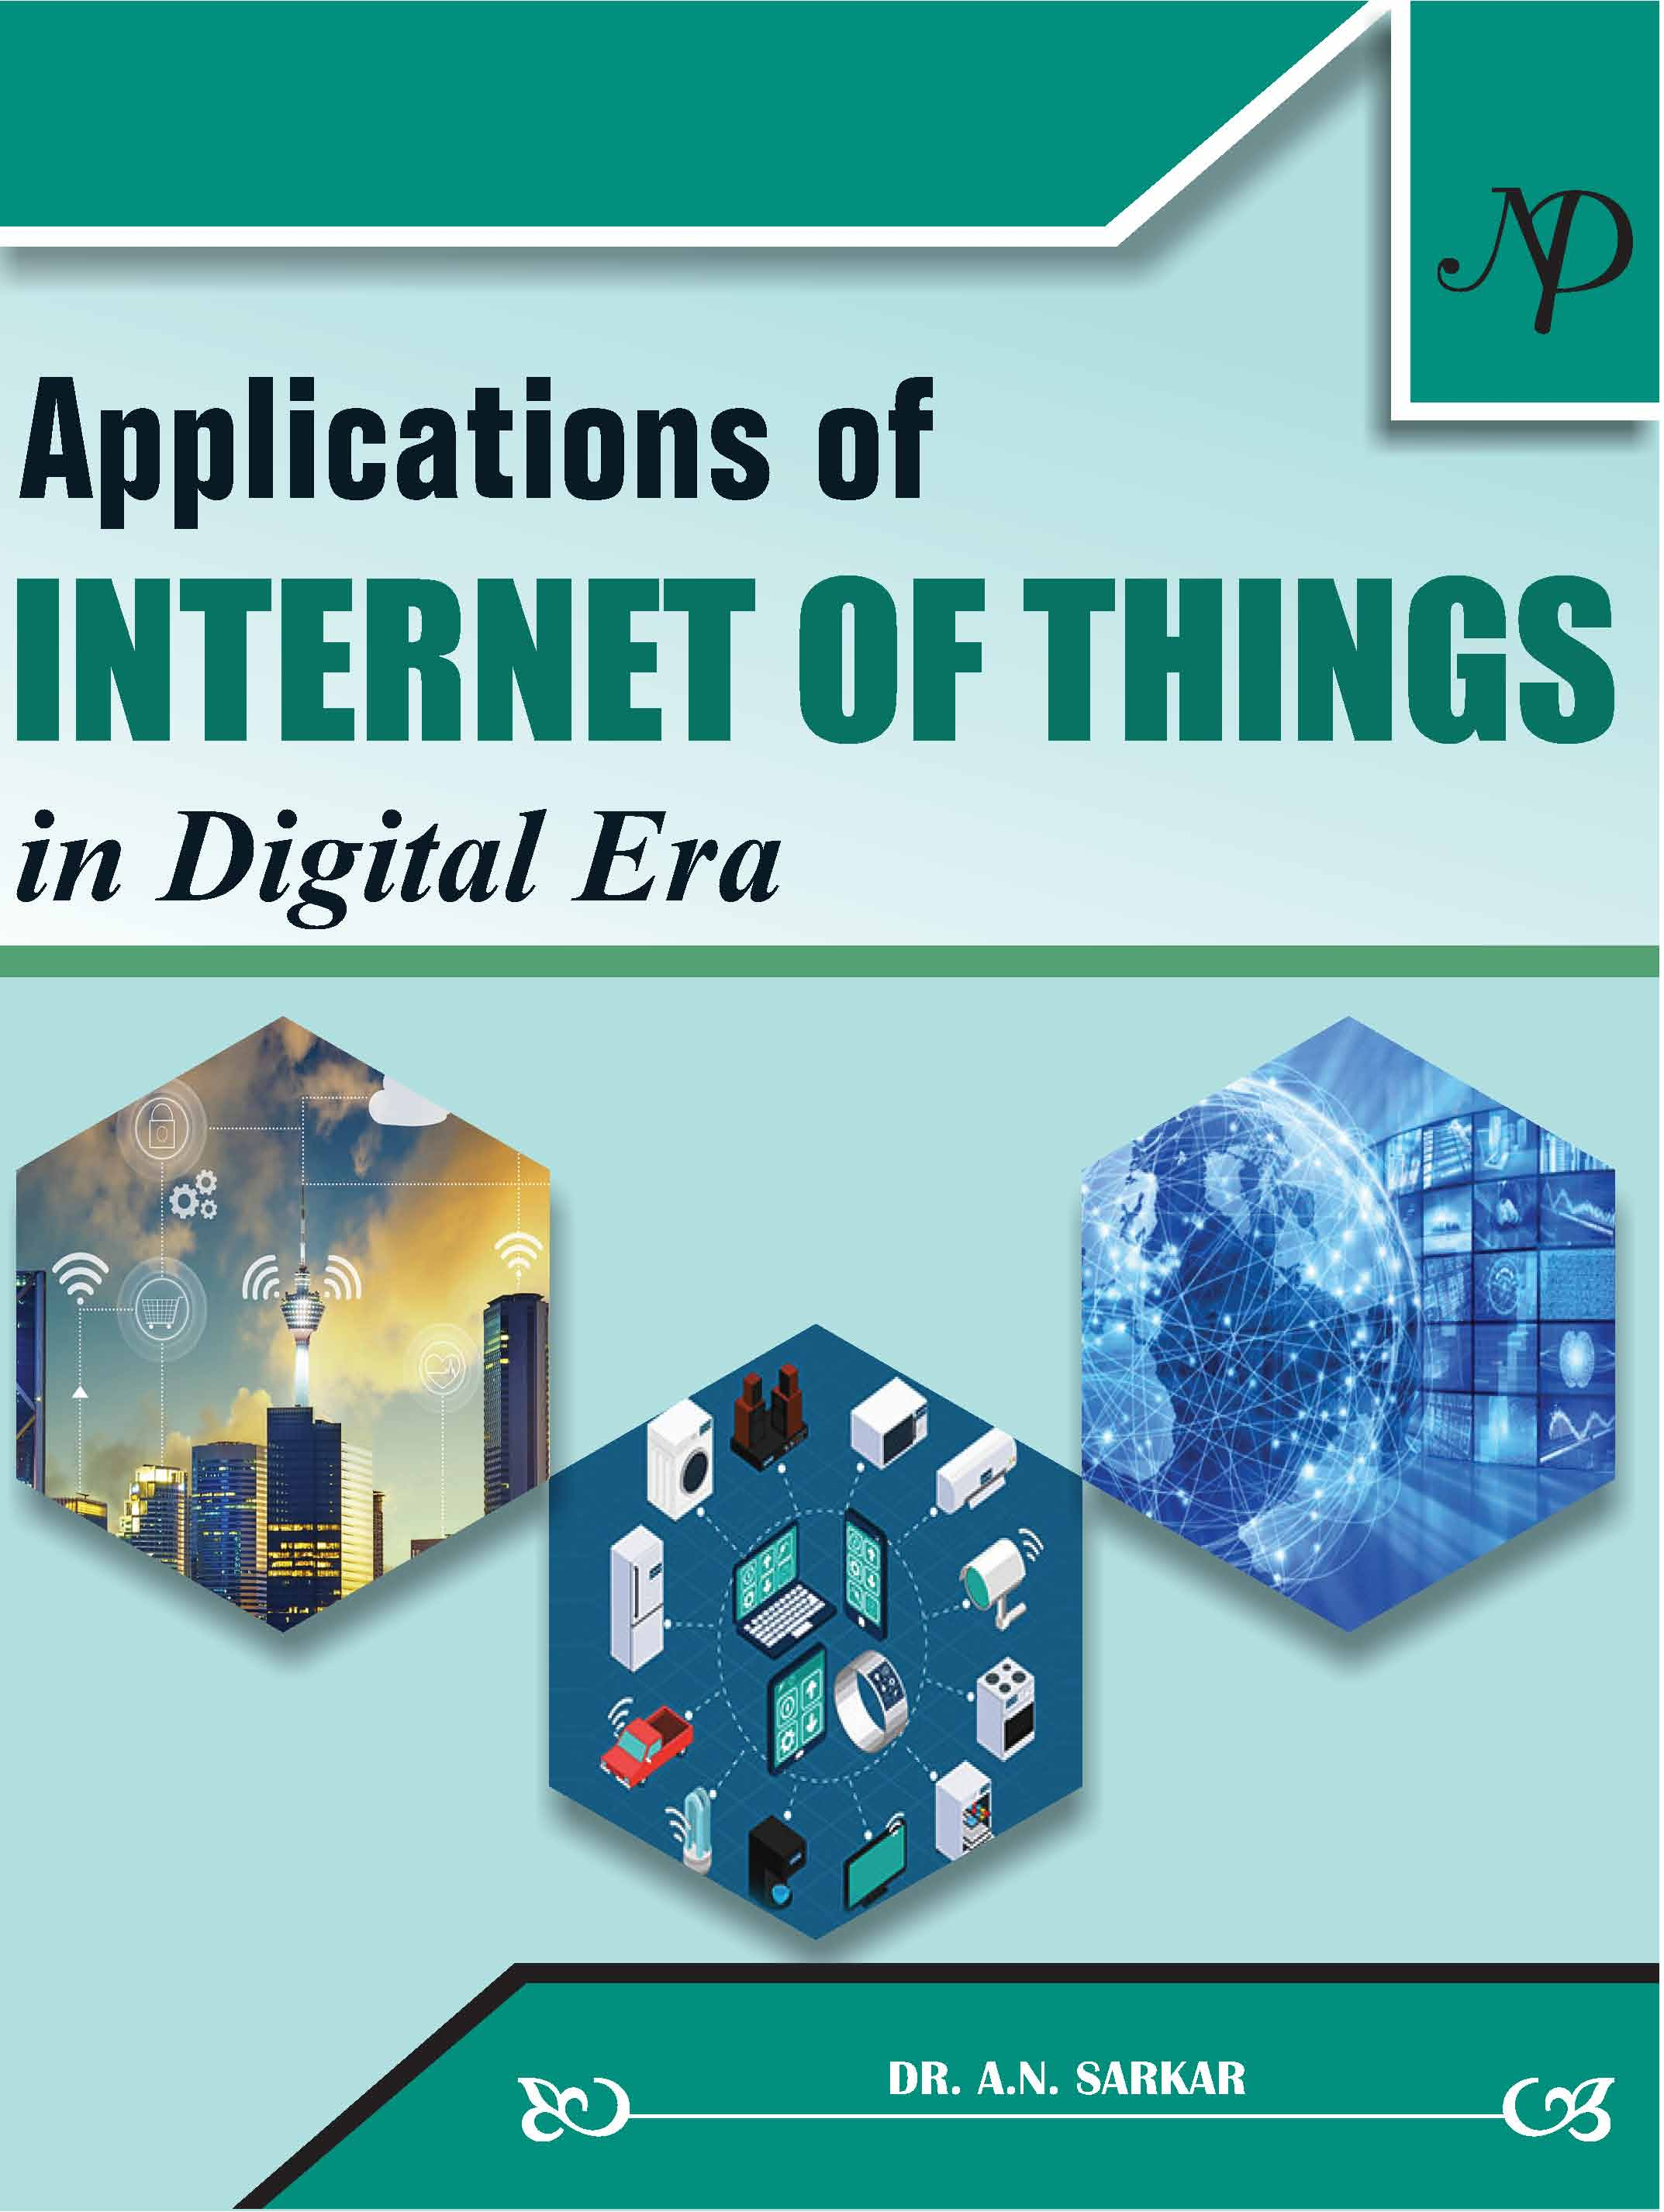 Applications of Internet of Things in Digital Era